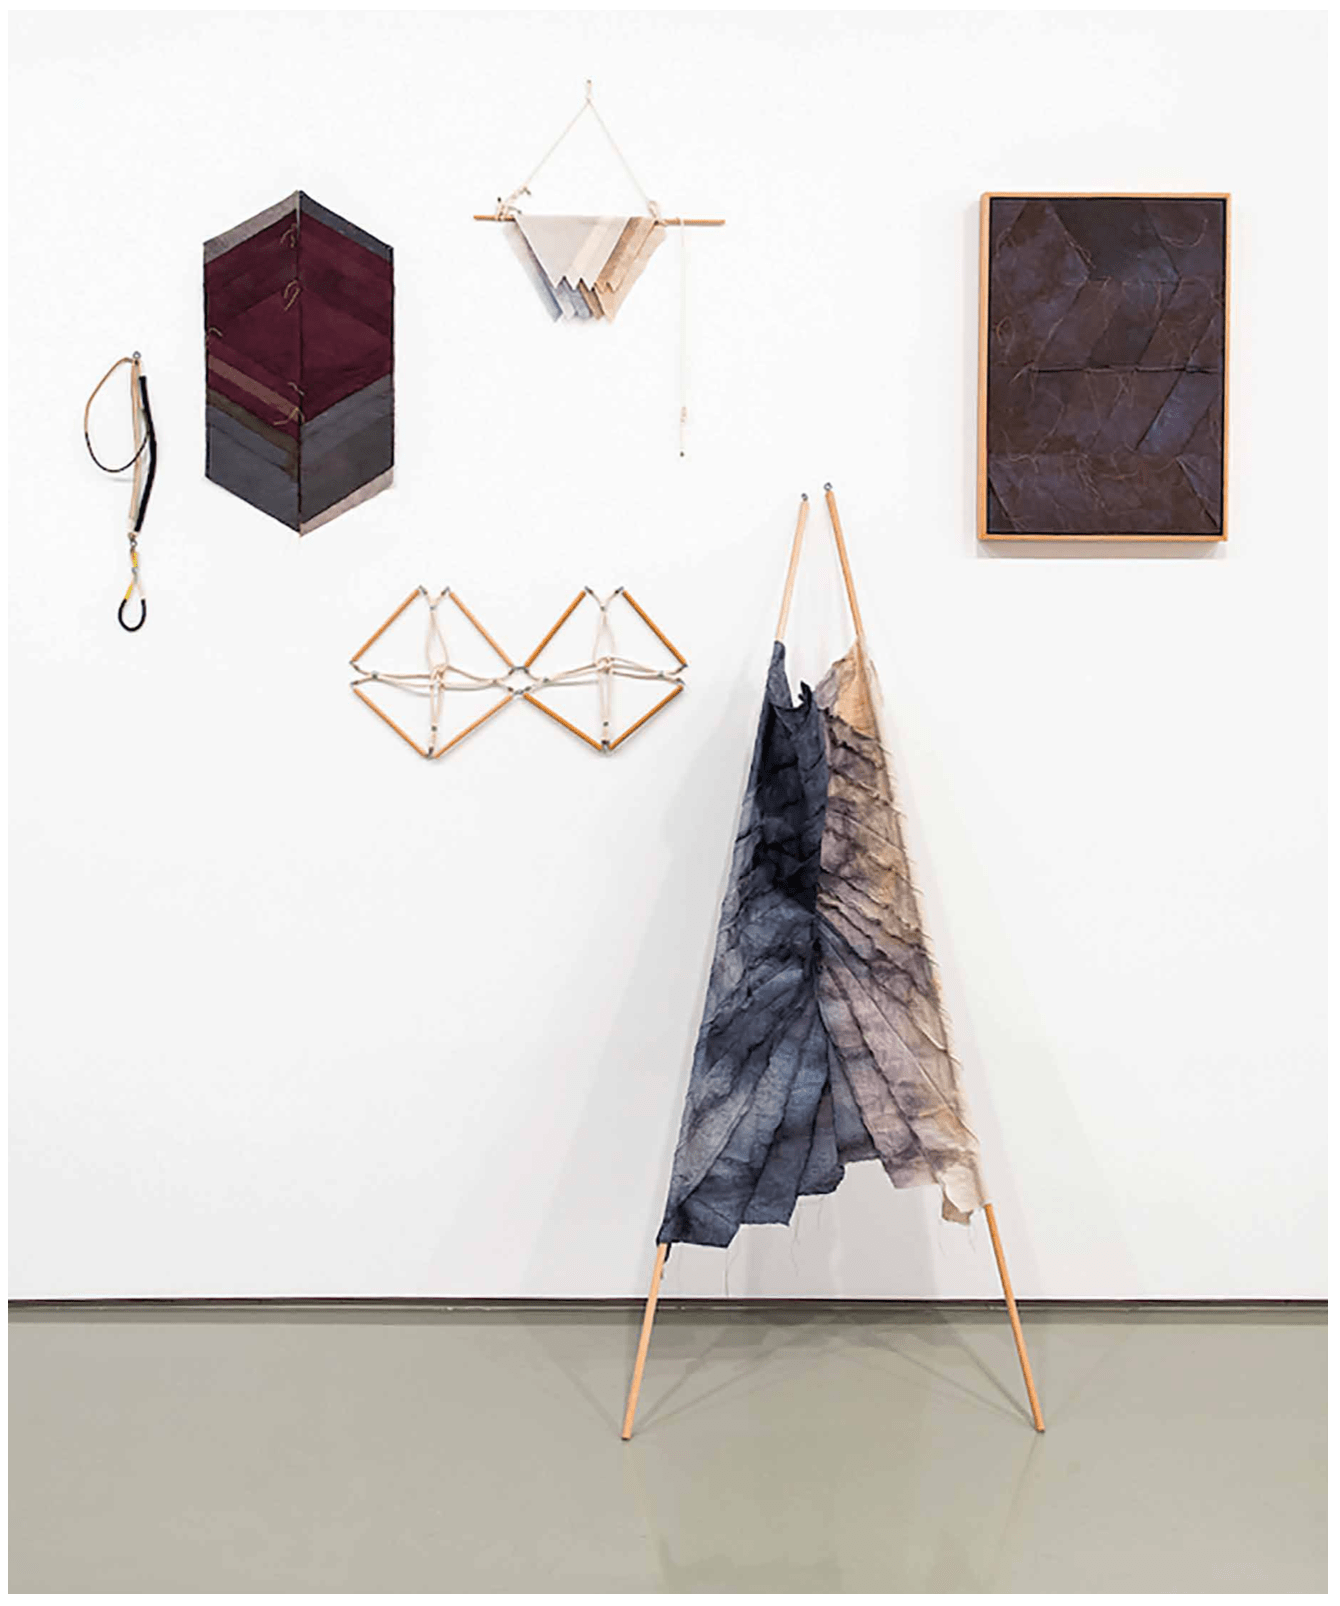 Starlie Geikie. Rapala, Standard, Tiles, Pennant, Ensign, We were river people 2012–13. © the artist, courtesy the artist.